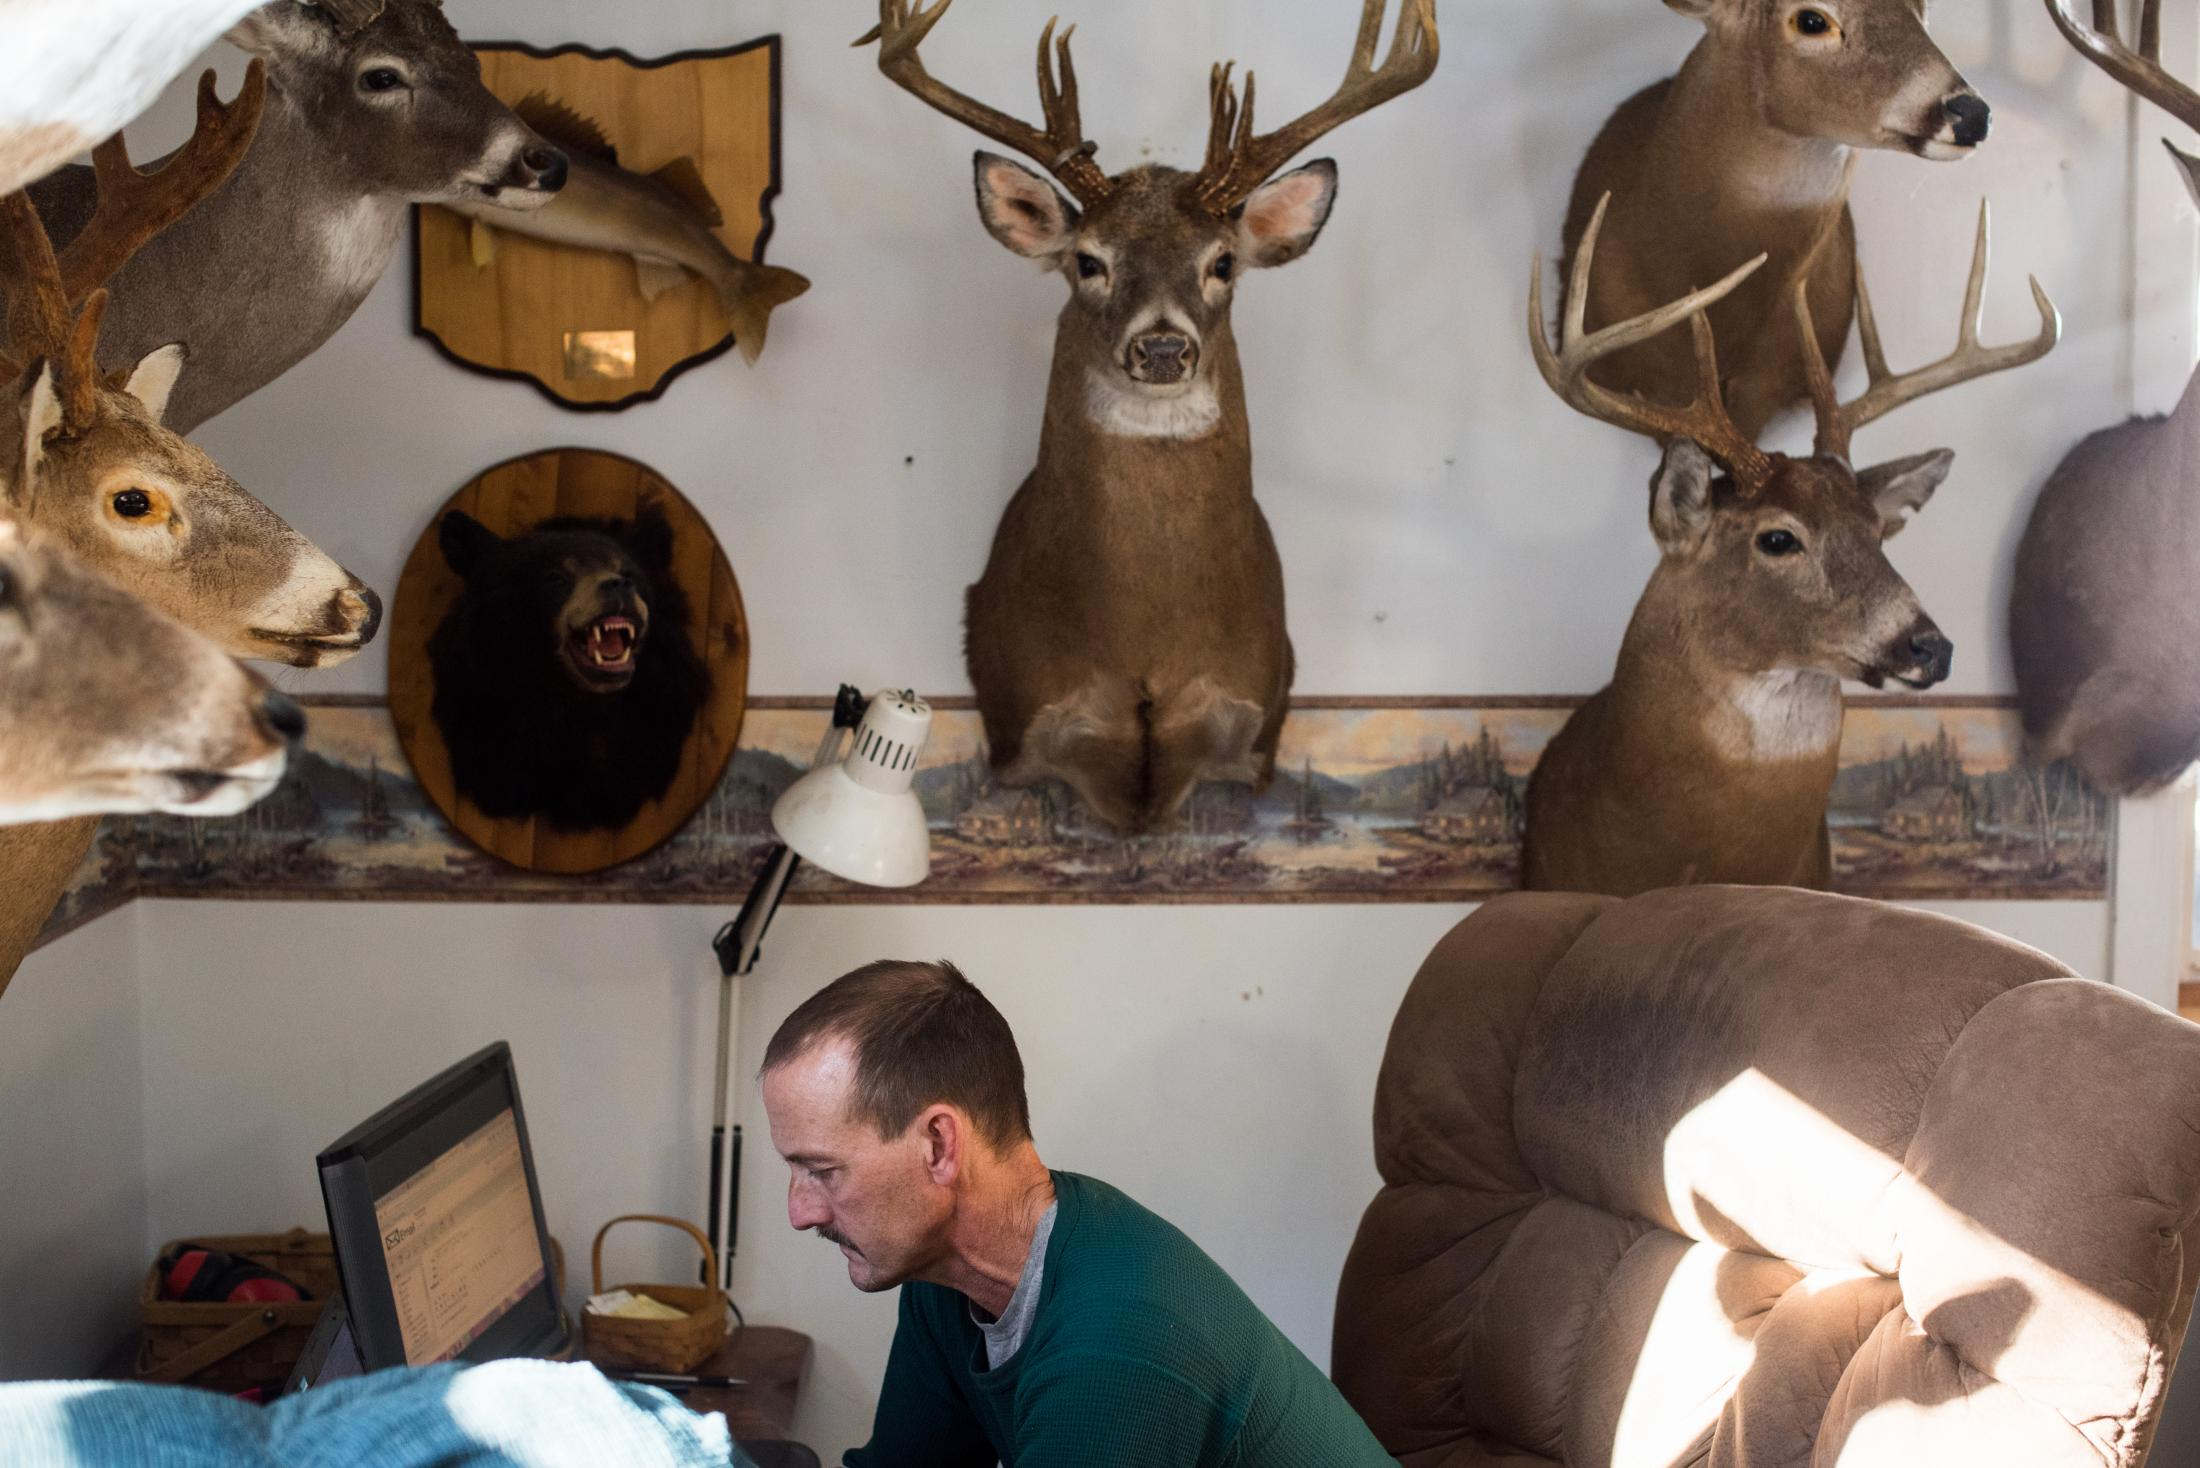 Dave Rupe types on his computer beneath his collection of deer mounts at his home two miles outside the center of the village of Coolville, Ohio, in February 2015. Rupe, who has lived in the area his whole life, is a skilled craftsman and makes a living by both selling his wares and by finding and reselling online items ranging from old farm equipment to unwanted animals mounts.